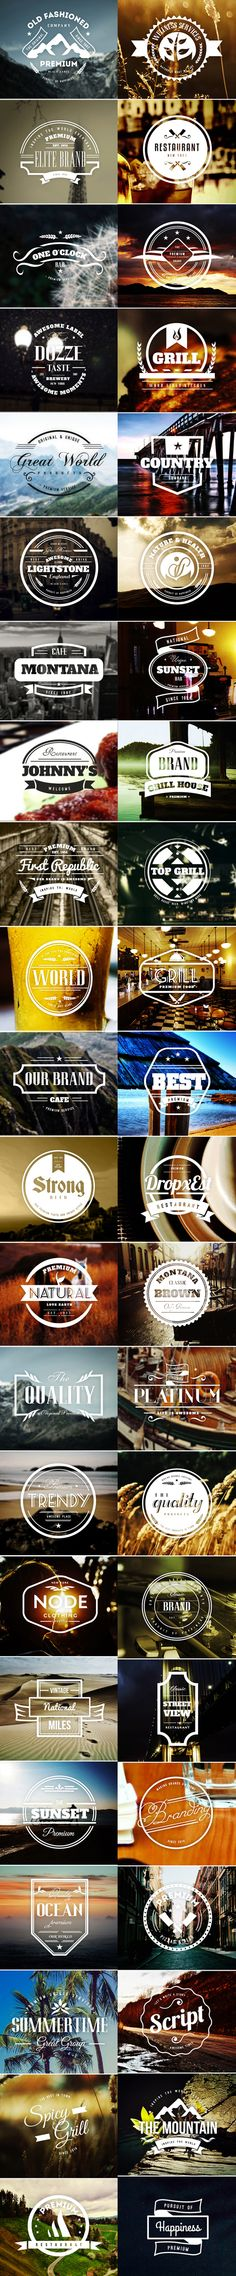 45 Vintage Labels & Badges Logos - Premium Bundle by Design District, via Behance.